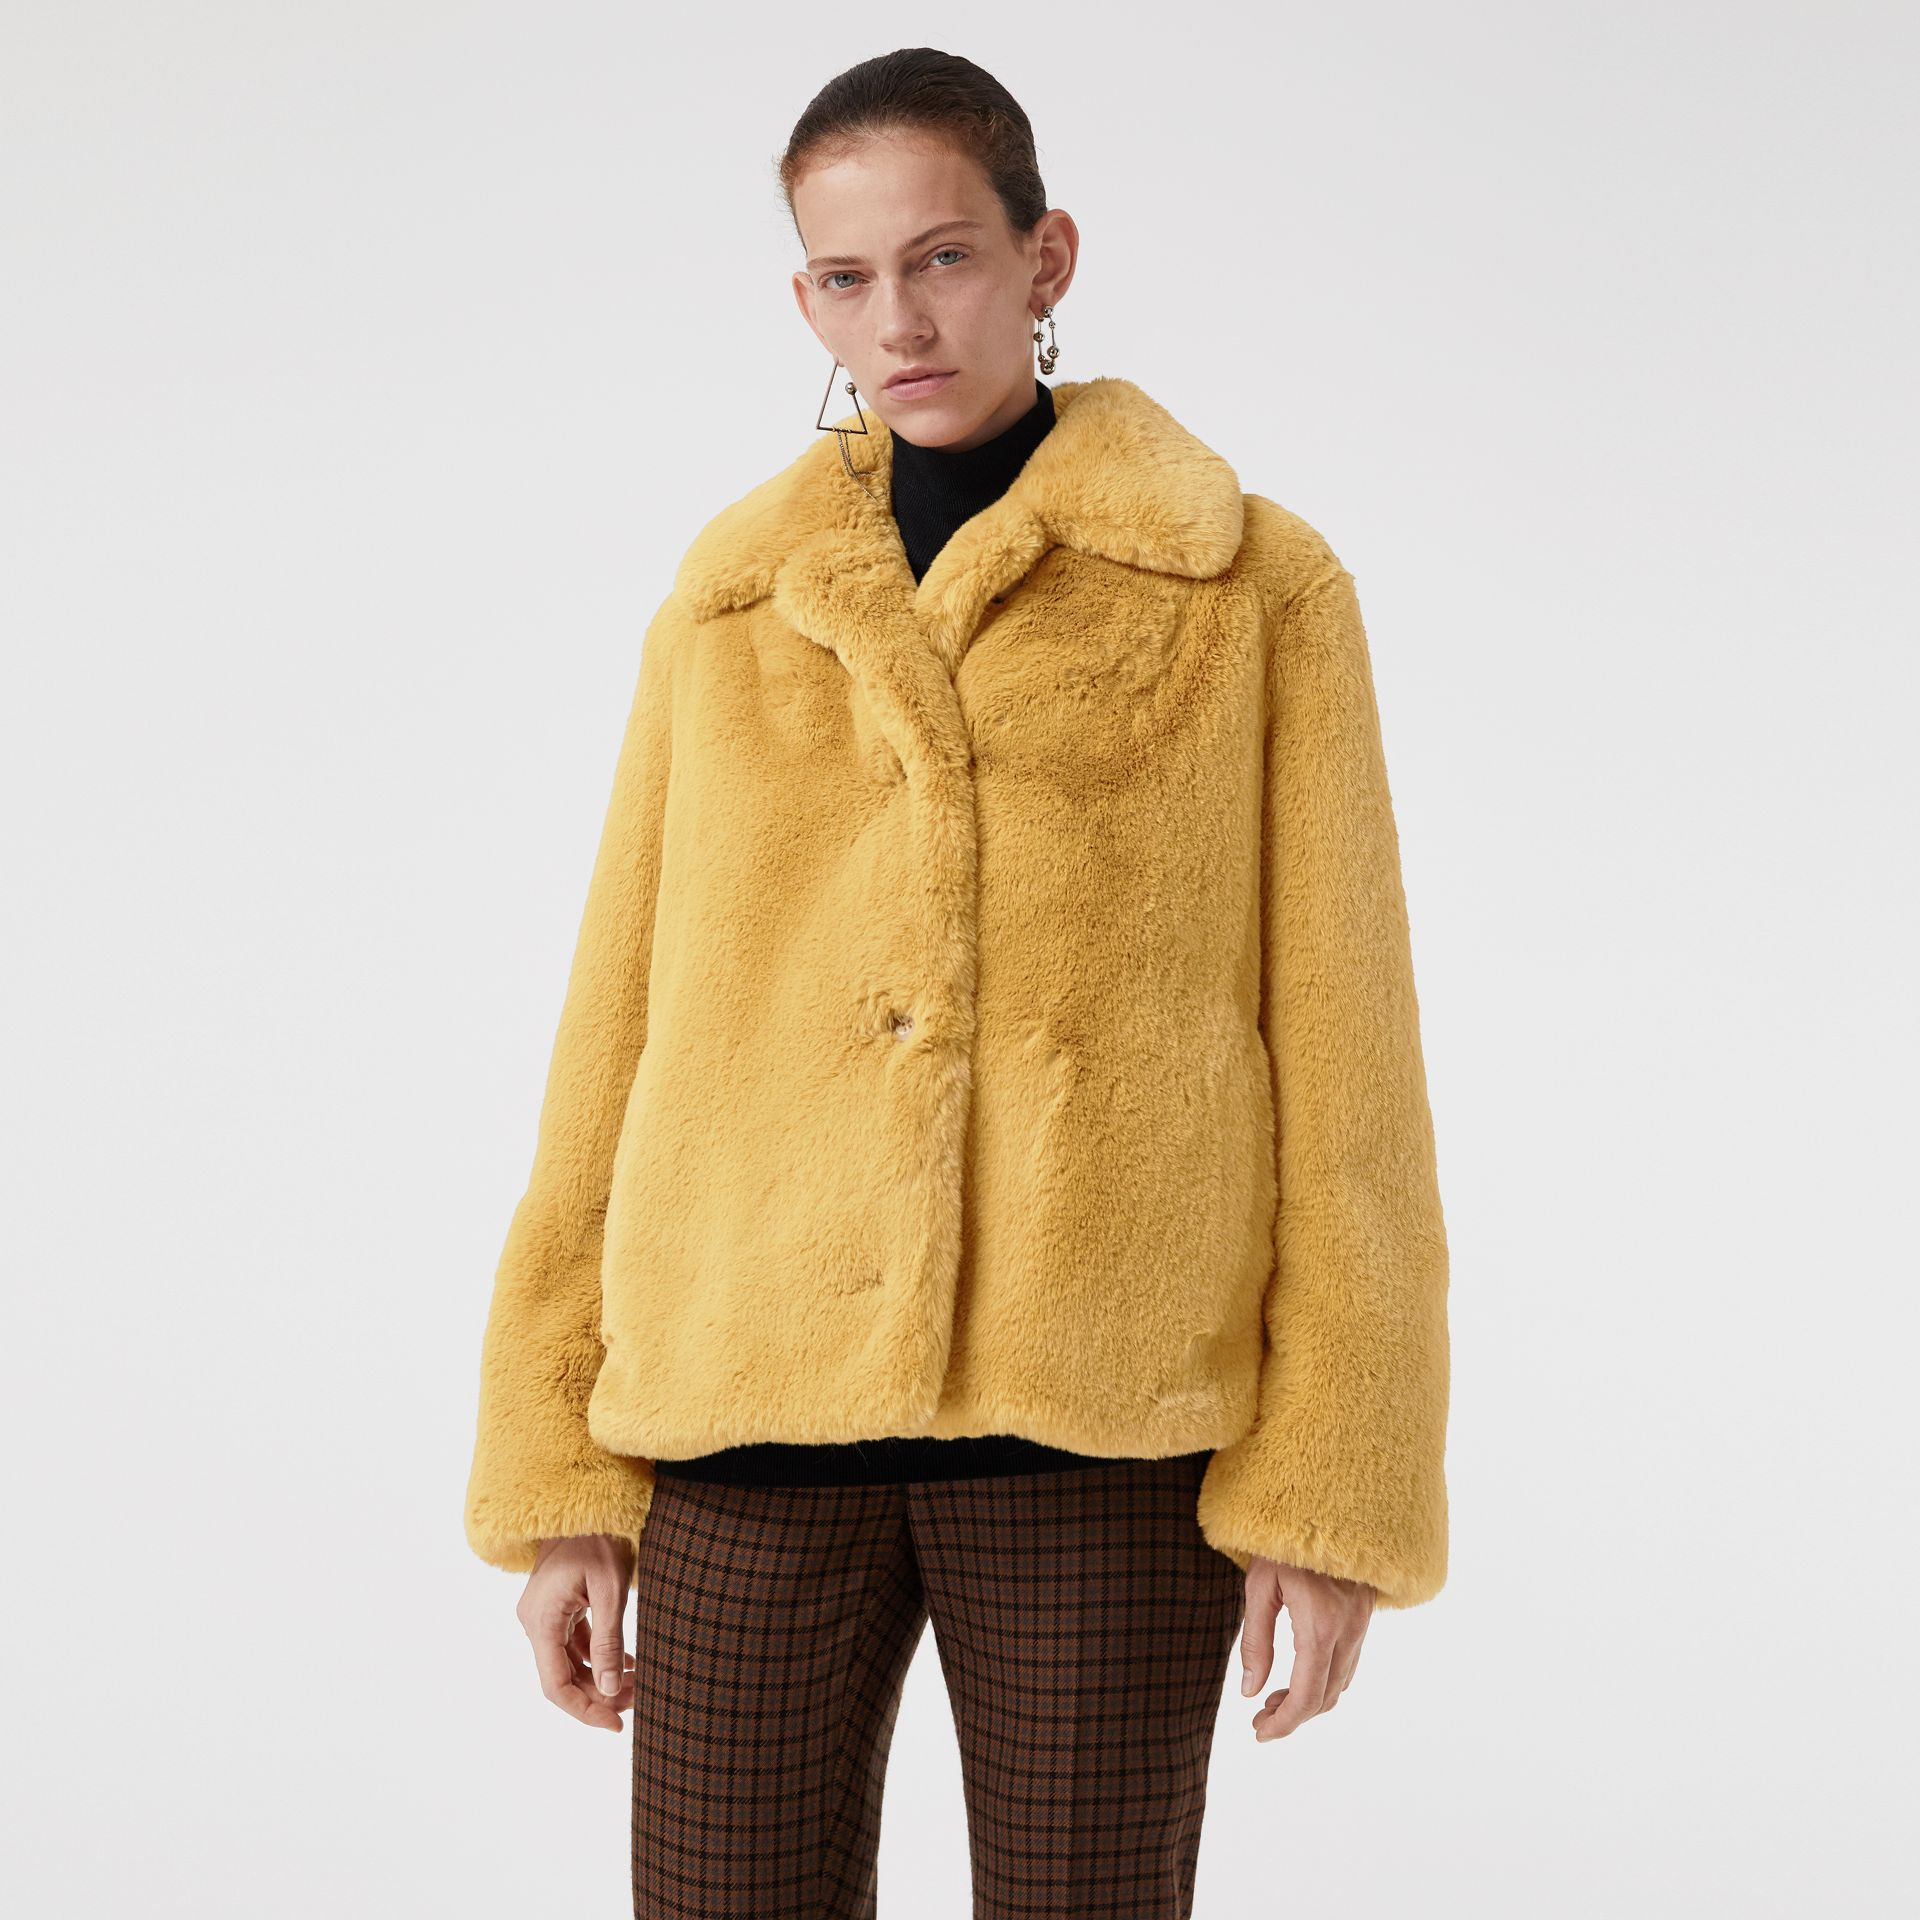 Faux Fur Single-Breasted Jacket in Ochre Yellow - Women | Burberry Australia - gallery image 5